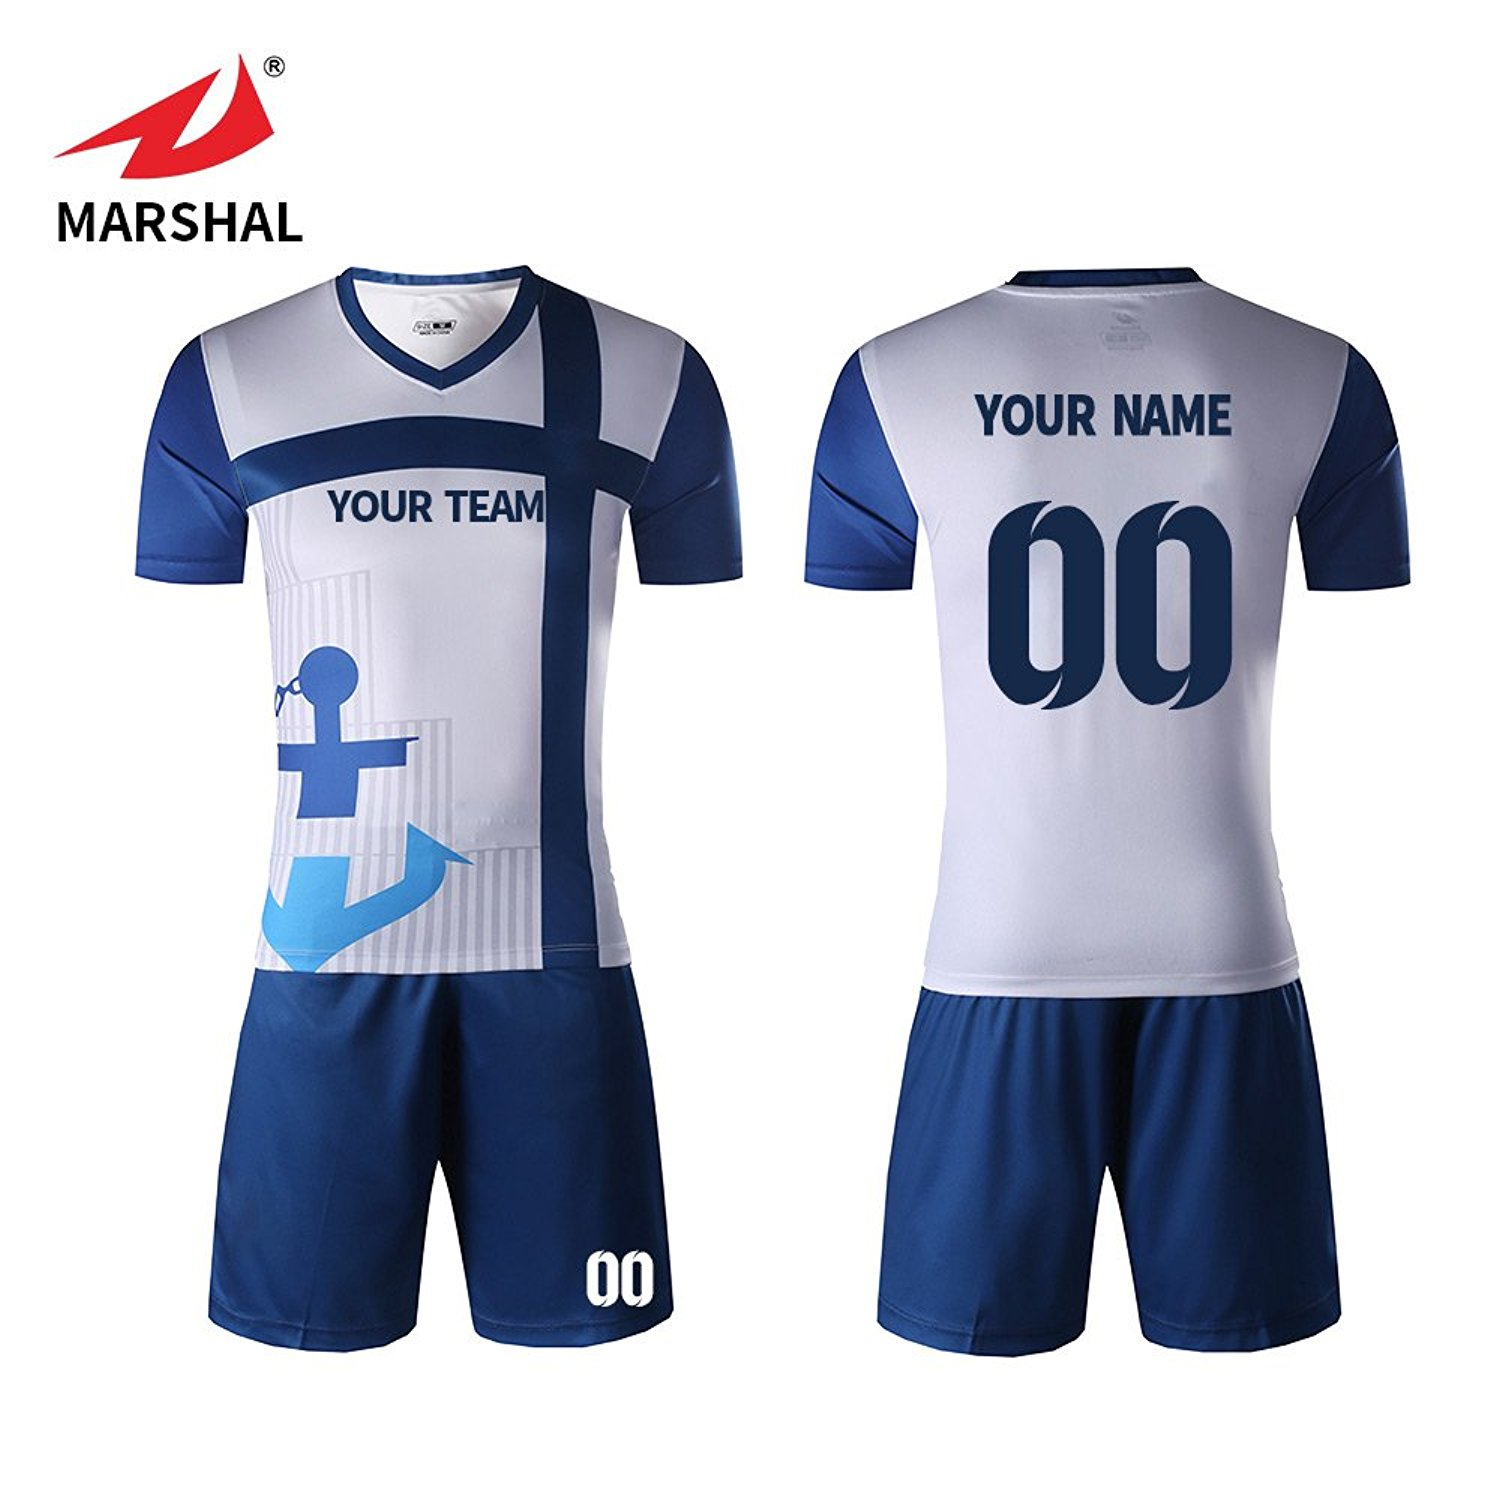 374c2f46de2 Get Quotations · Marshal Jersey Personalized Soccer Jerseys Blue Jersey  Sublimated Digital Printing Sportwear Custom Soccer Jersey Set Custom